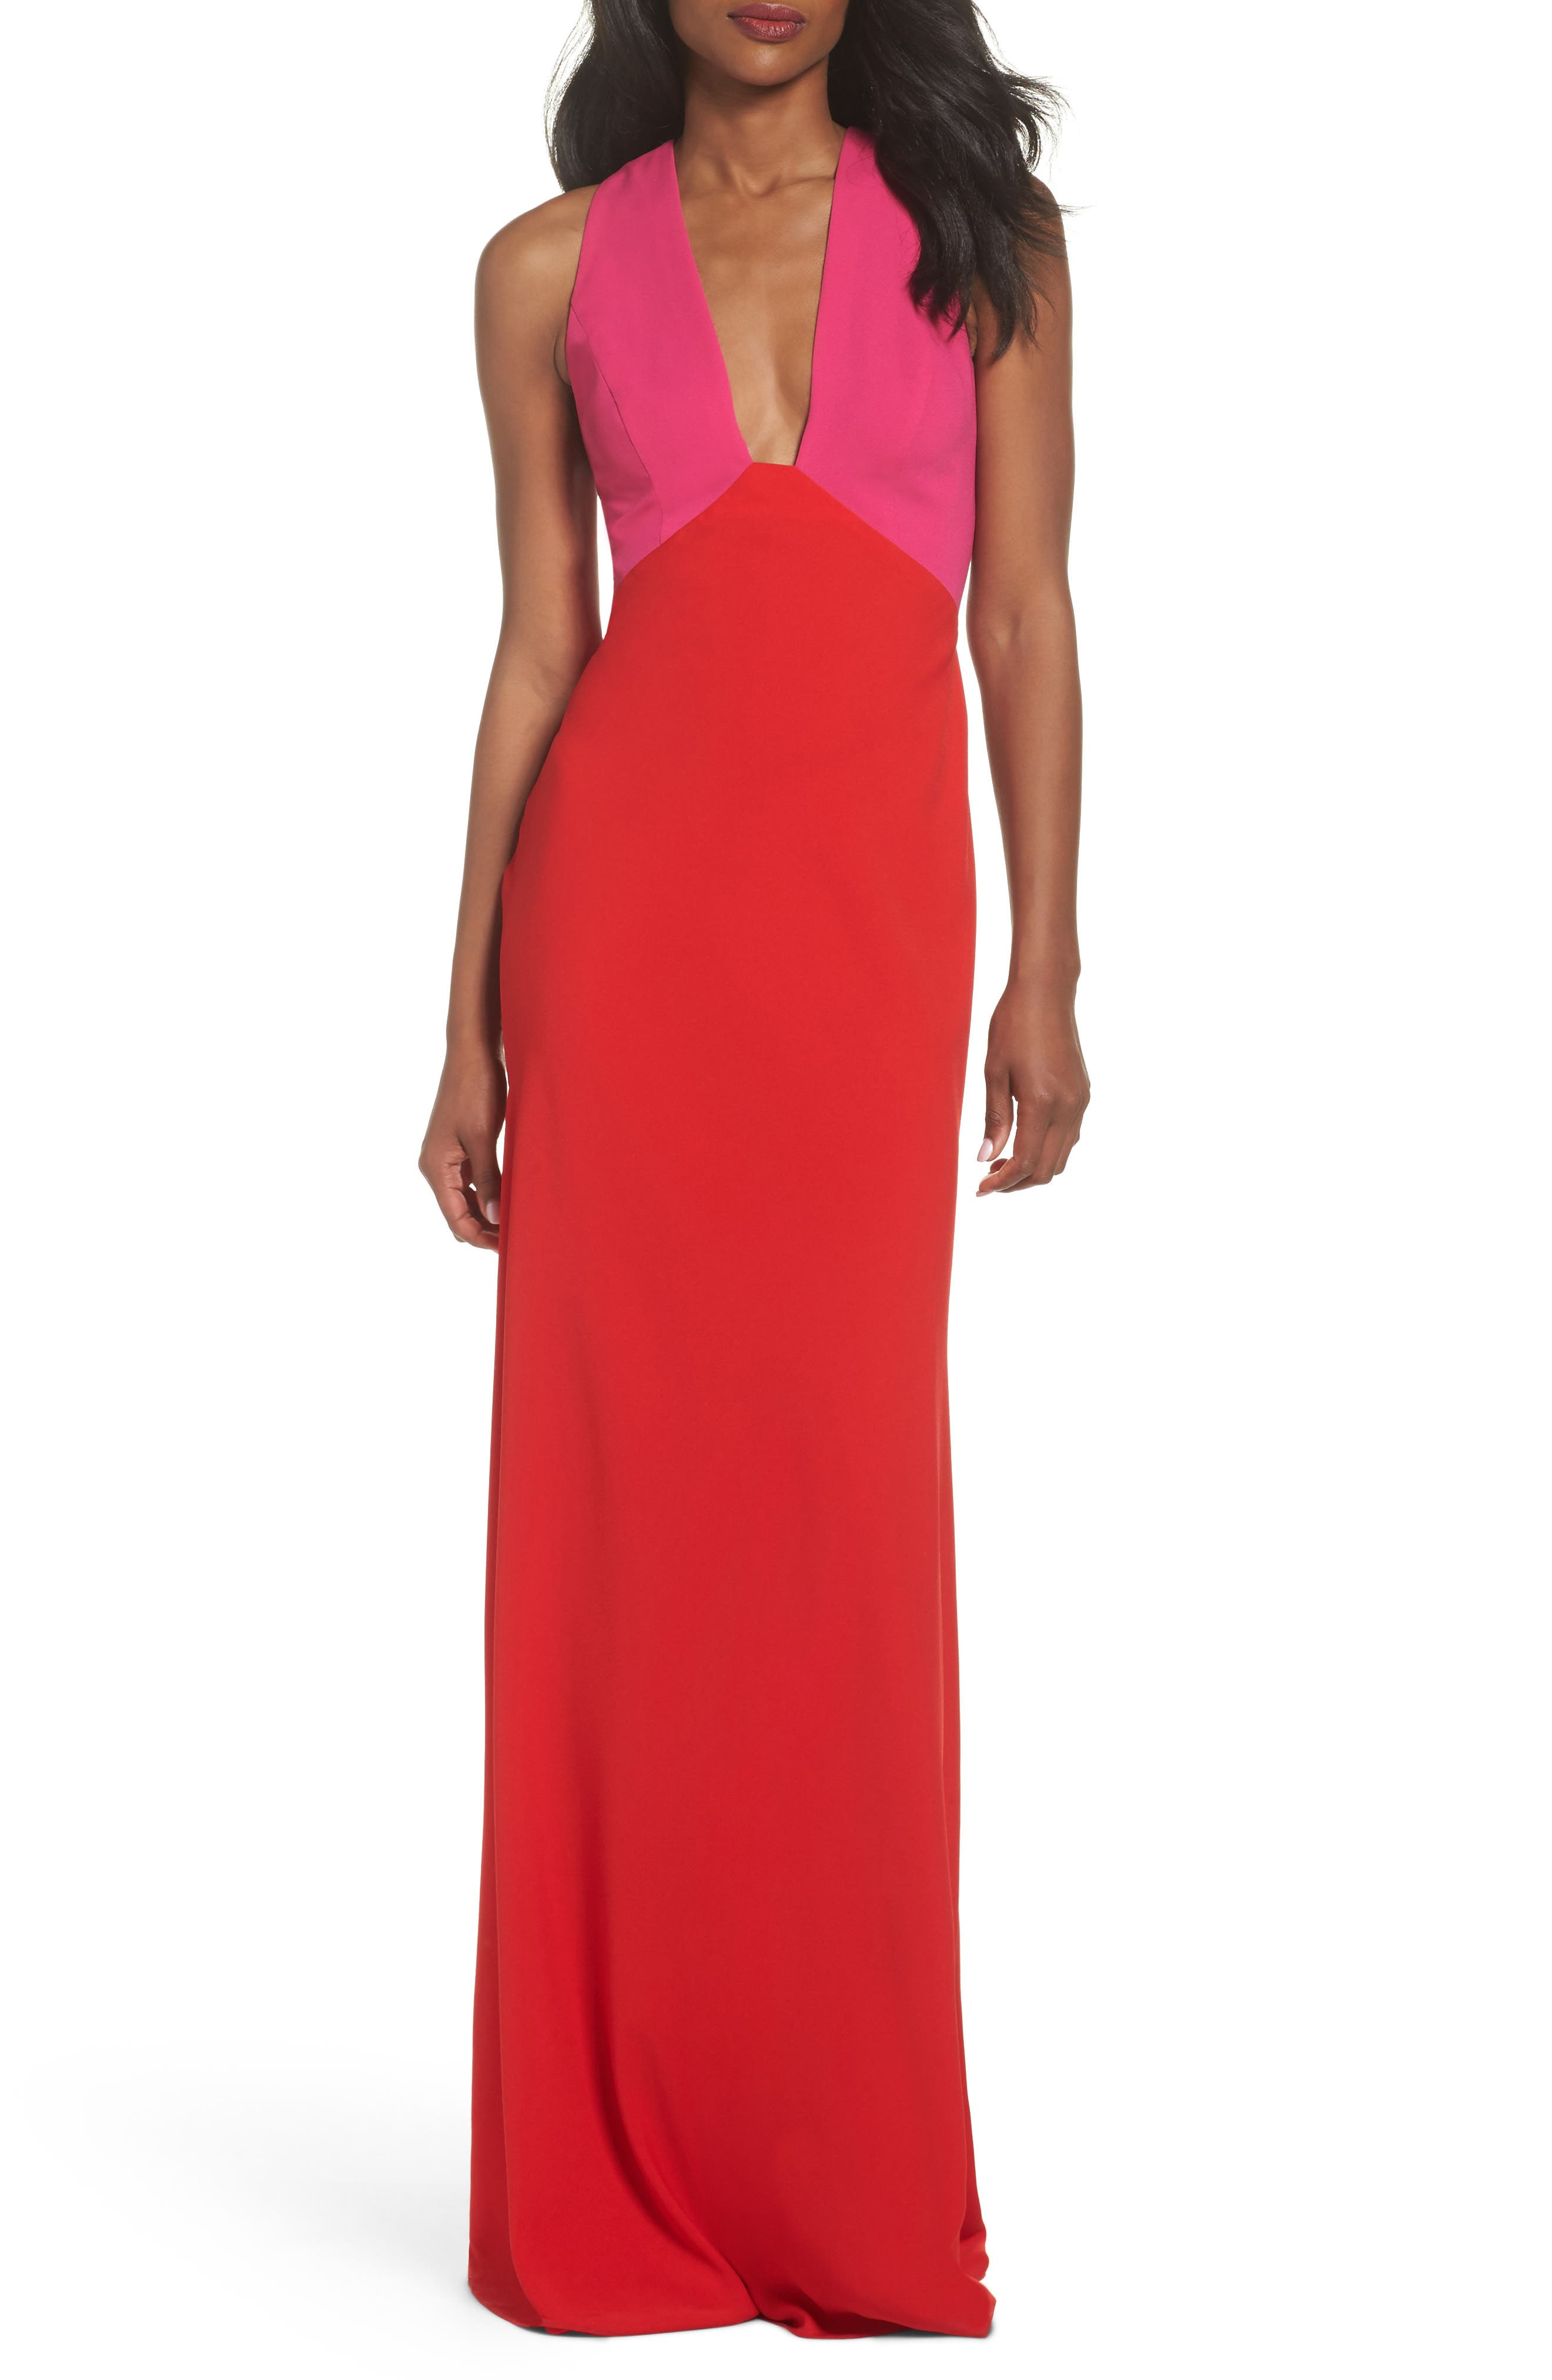 Colorblock Column Gown,                             Main thumbnail 1, color,                             Begonia Pink/ Poppy Red